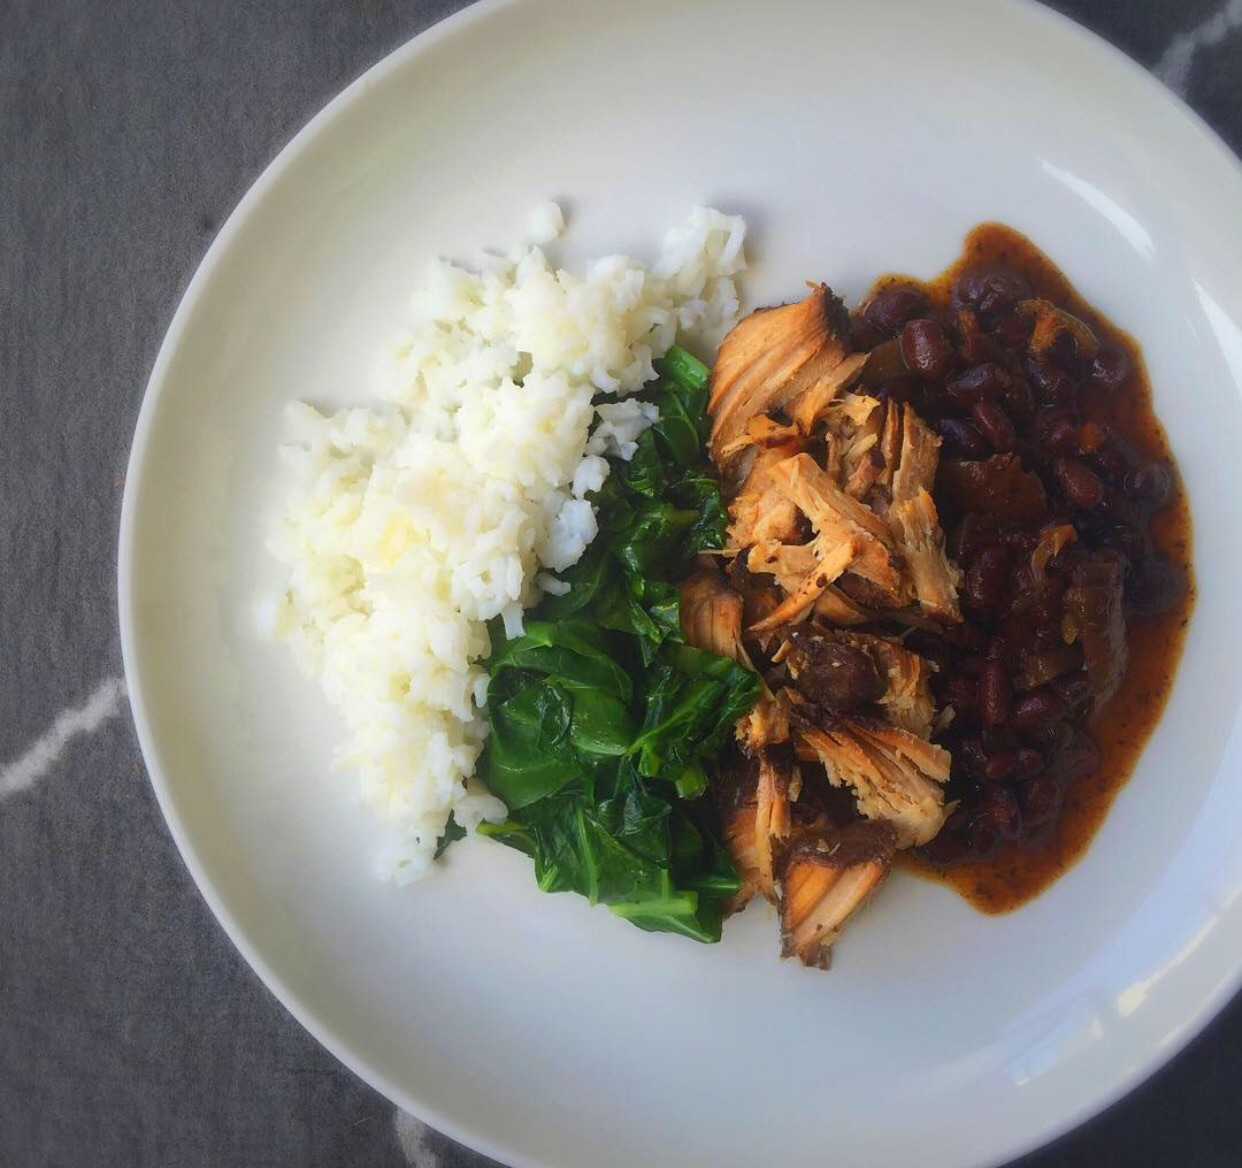 Feijoada - Brazilian pork stew with Rice, Beans, Collards.